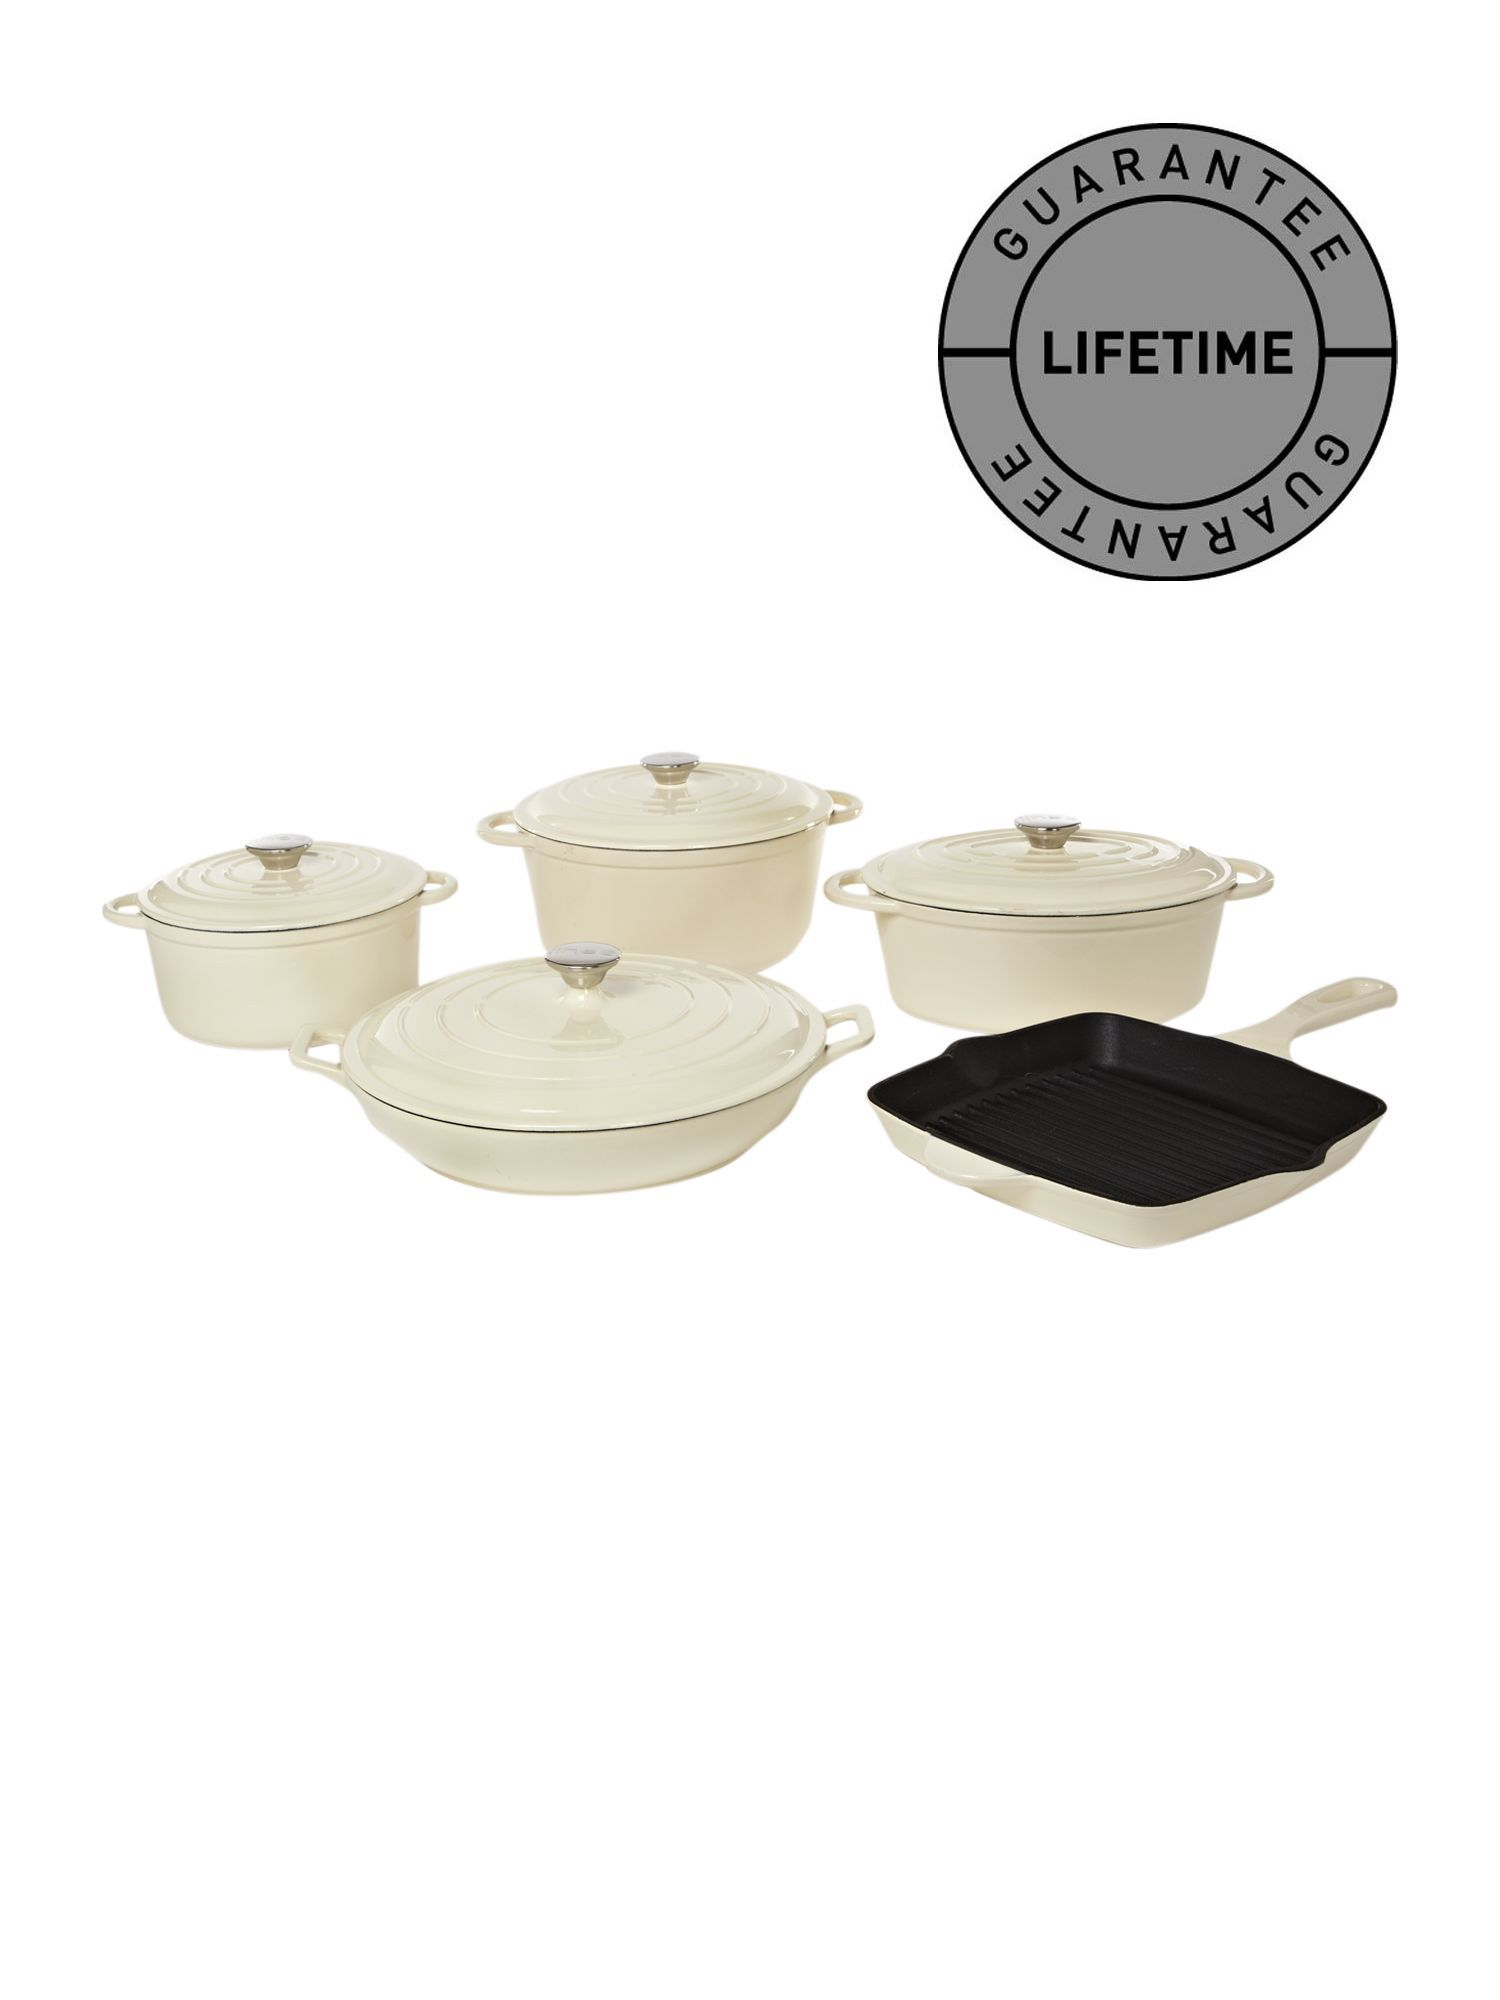 Cast iron cookware in cream